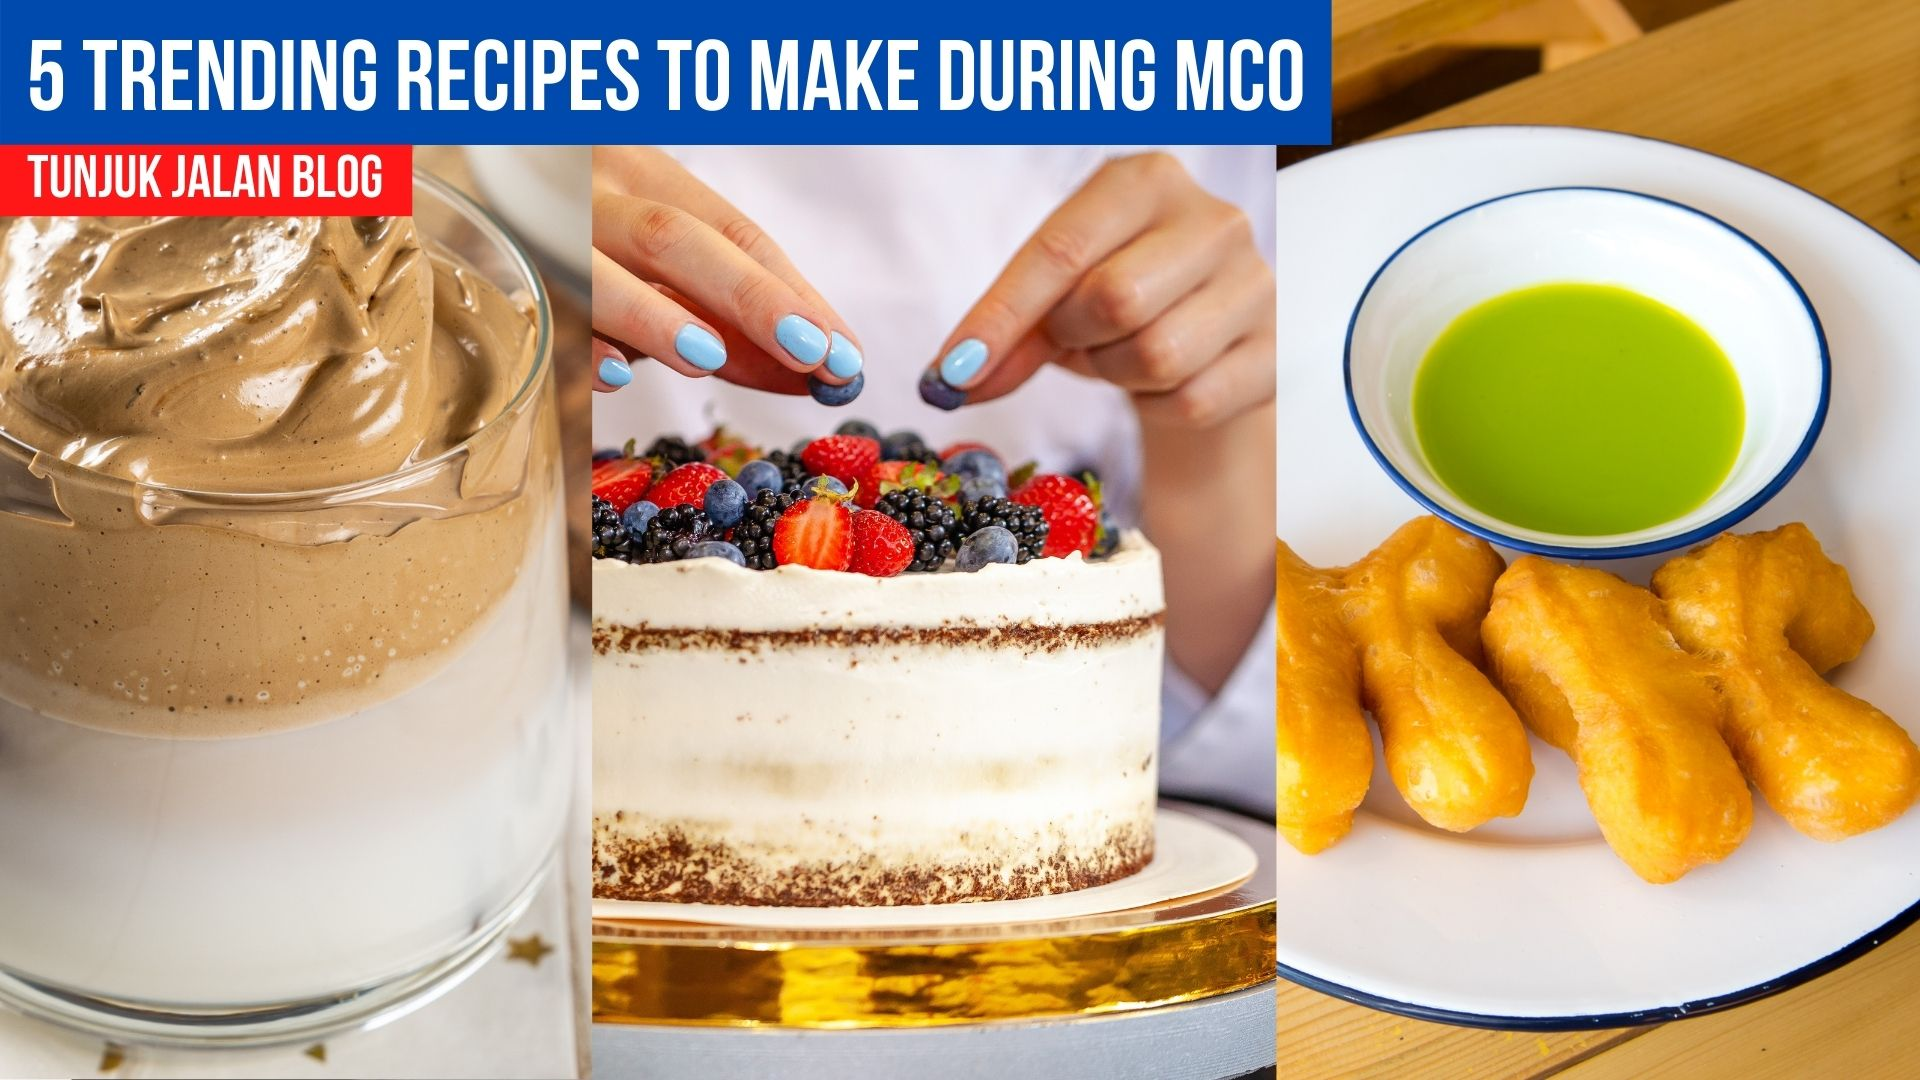 5 Trending Recipes To Make During MCO